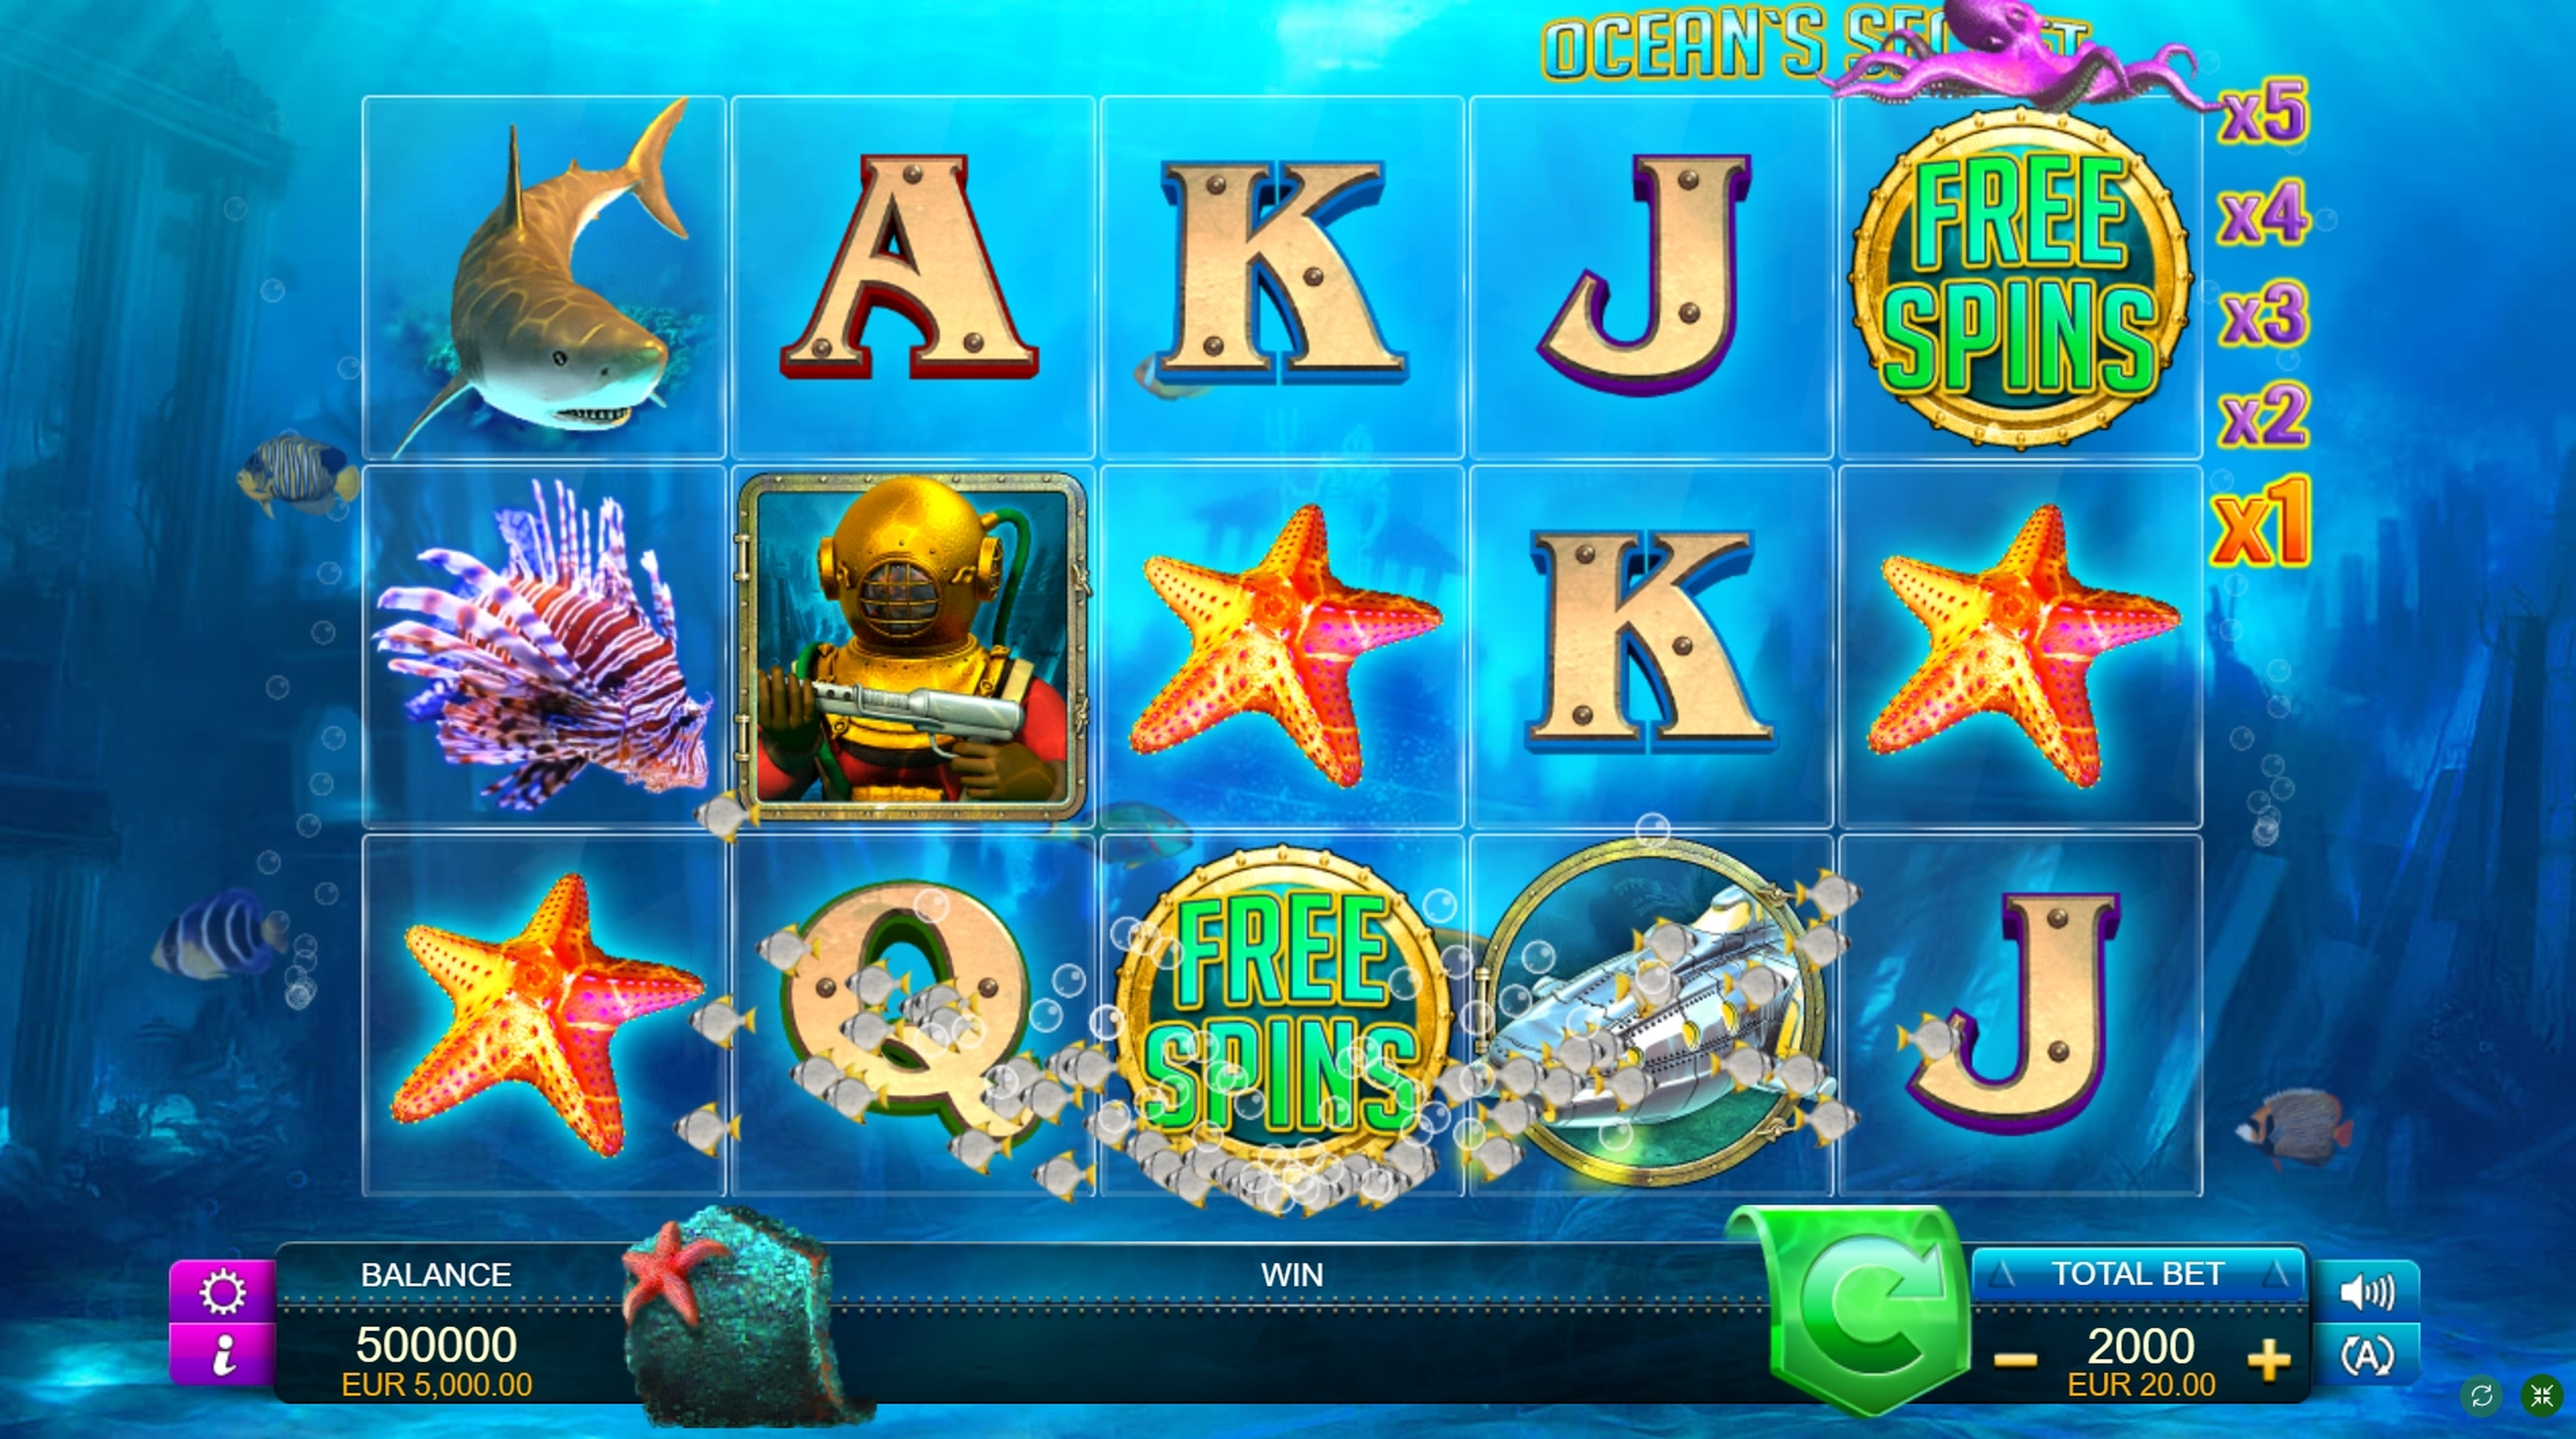 Reels in Ocean's Secret Slot Game by FUGA Gaming